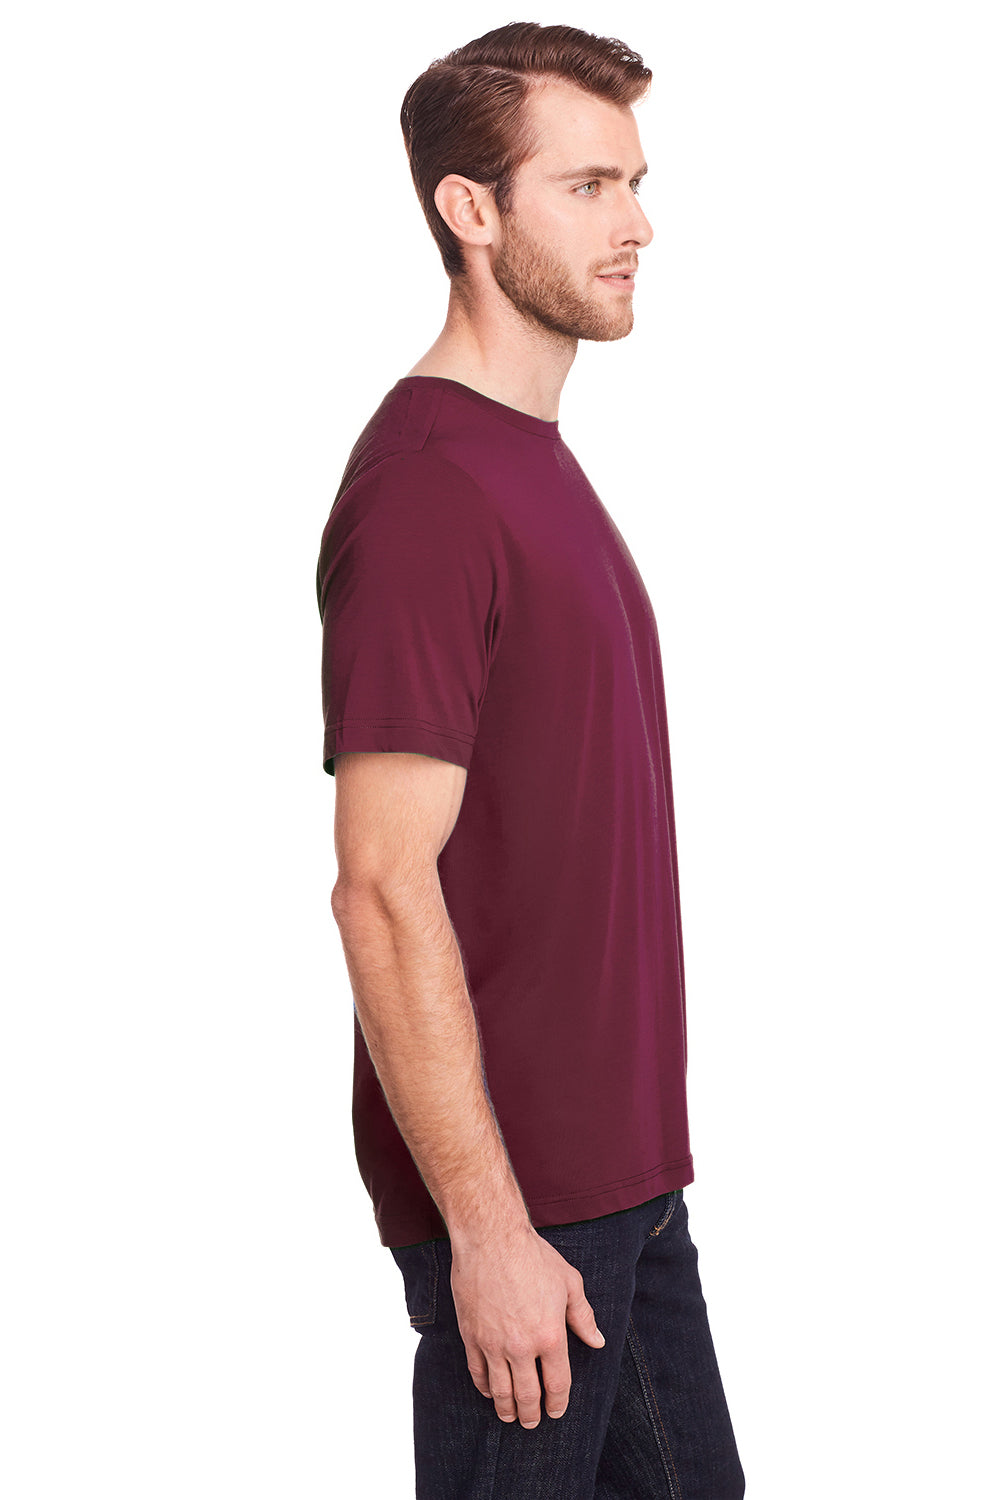 Core 365 CE111 Mens Fusion ChromaSoft Performance Moisture Wicking Short Sleeve Crewneck T-Shirt Burgundy Side